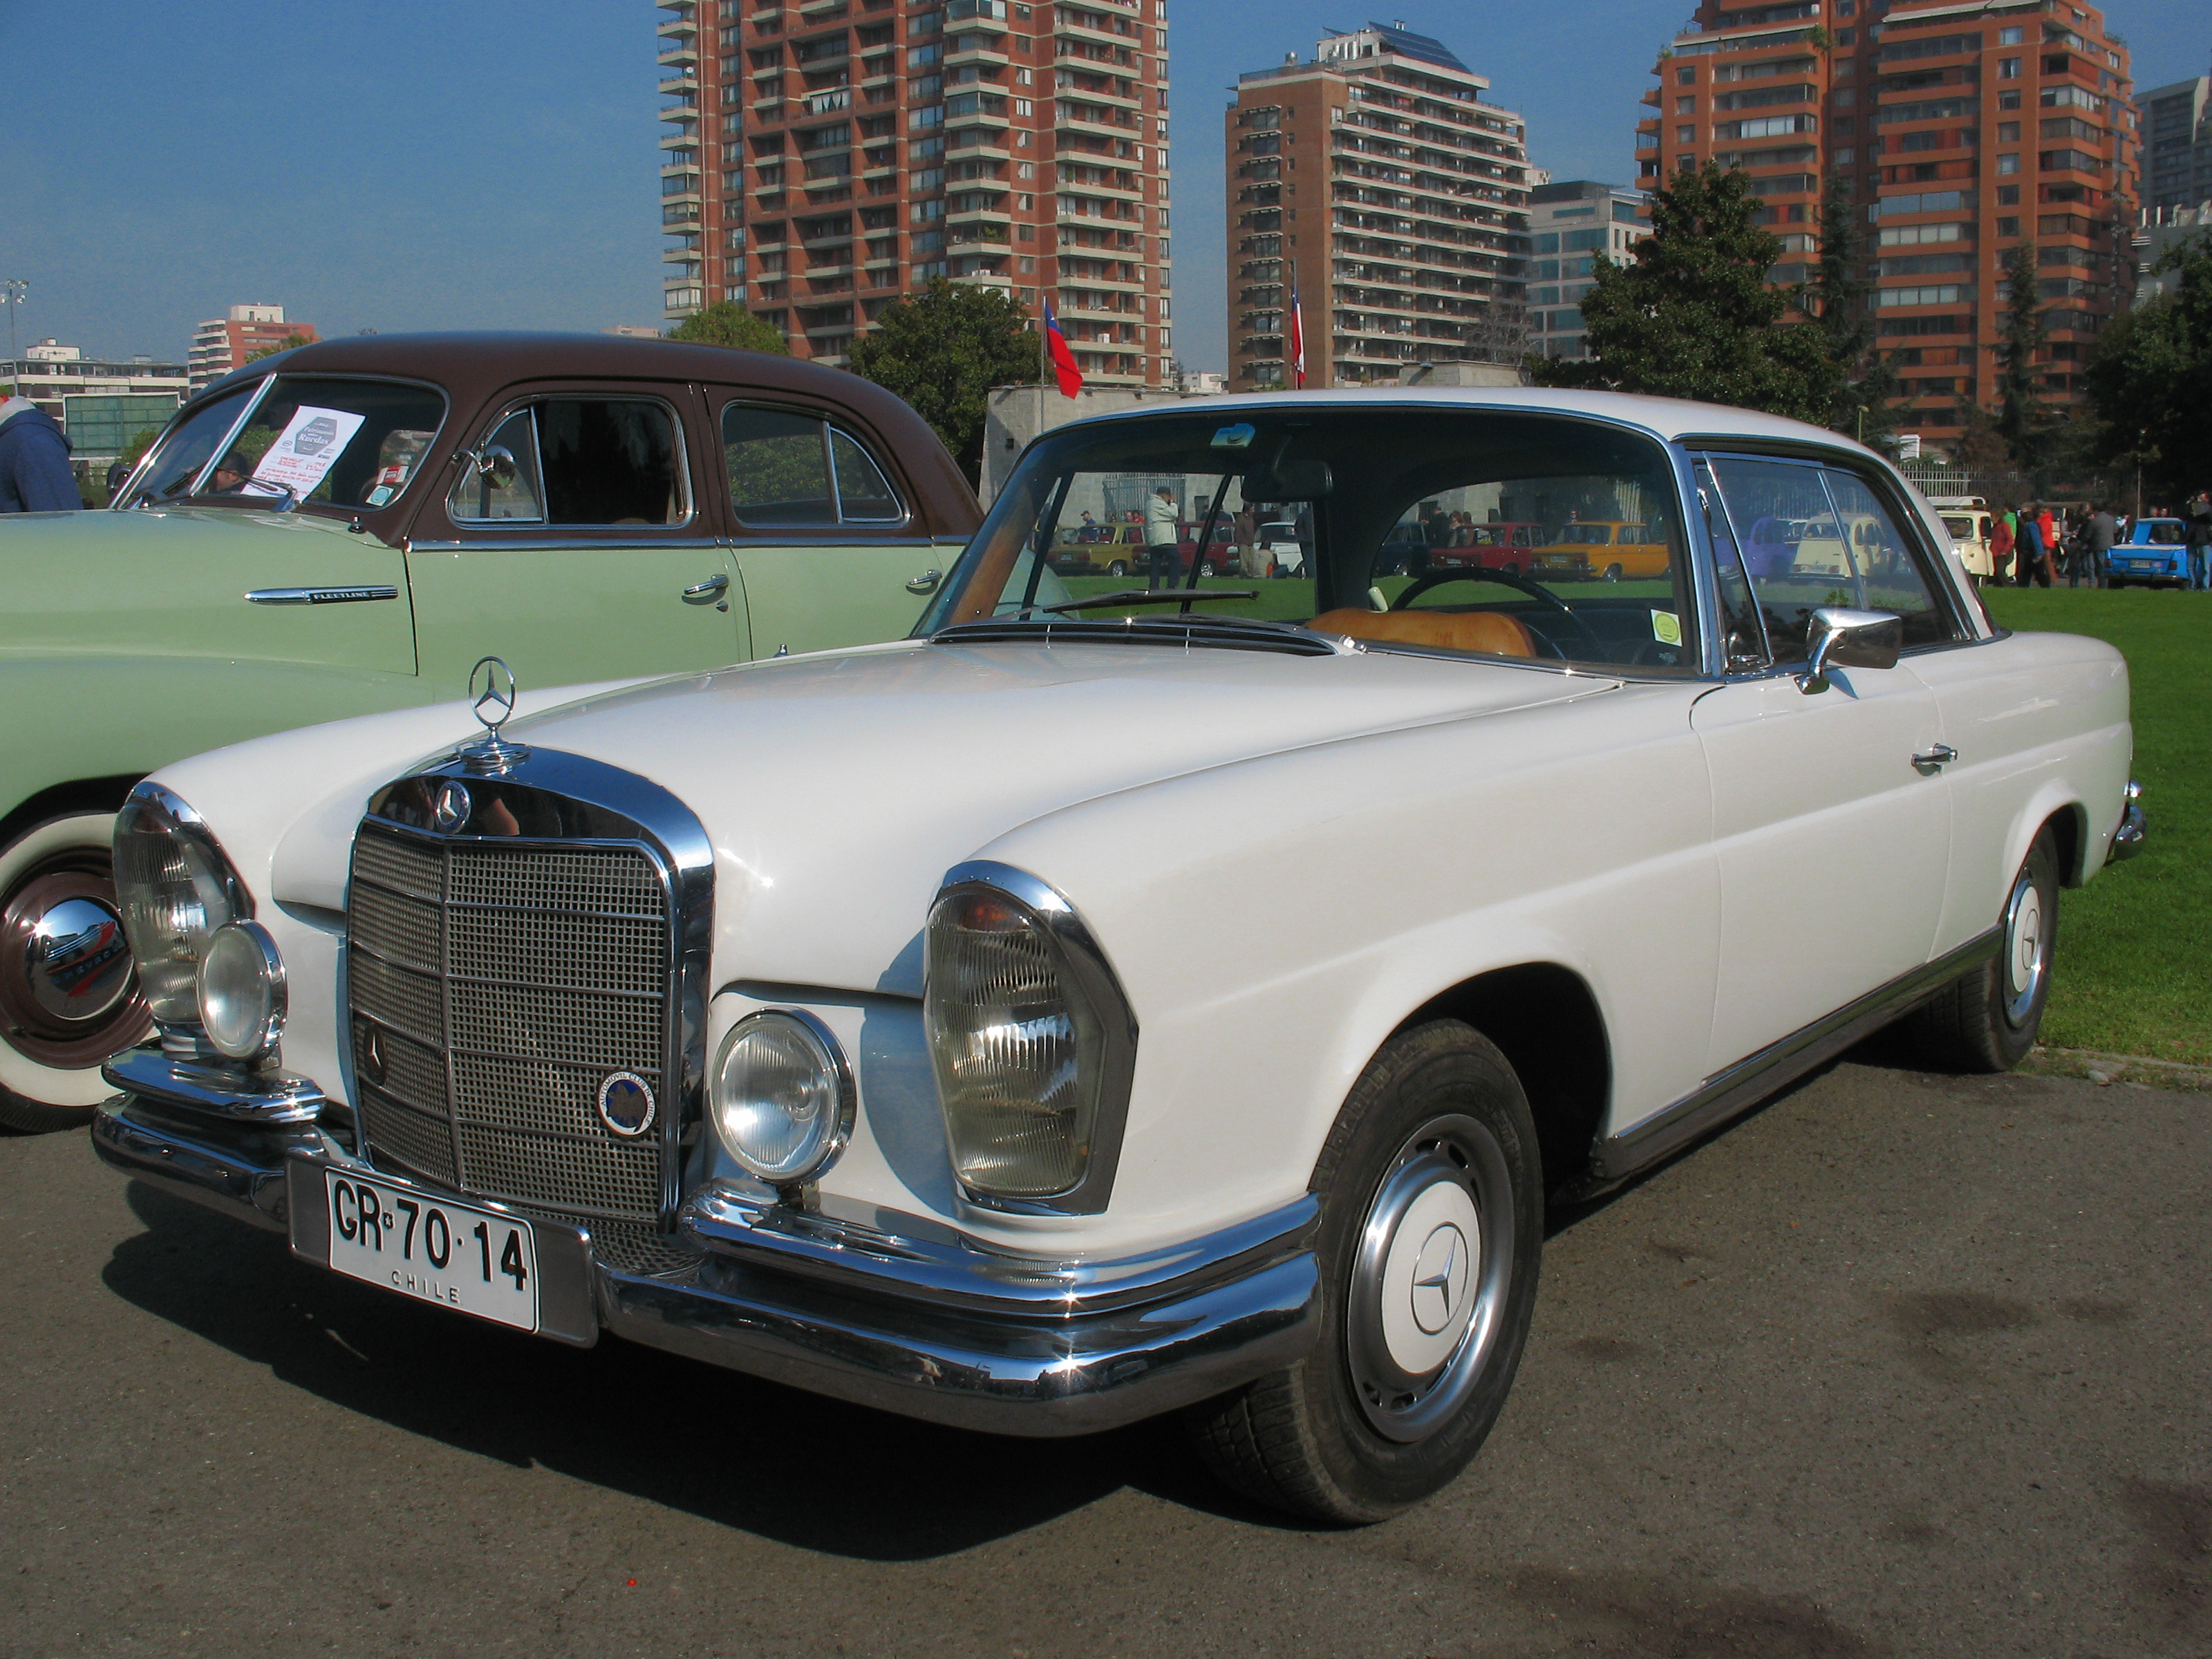 file mercedes benz 220 se coupe 1965 14355288315 jpg wikimedia commons. Black Bedroom Furniture Sets. Home Design Ideas